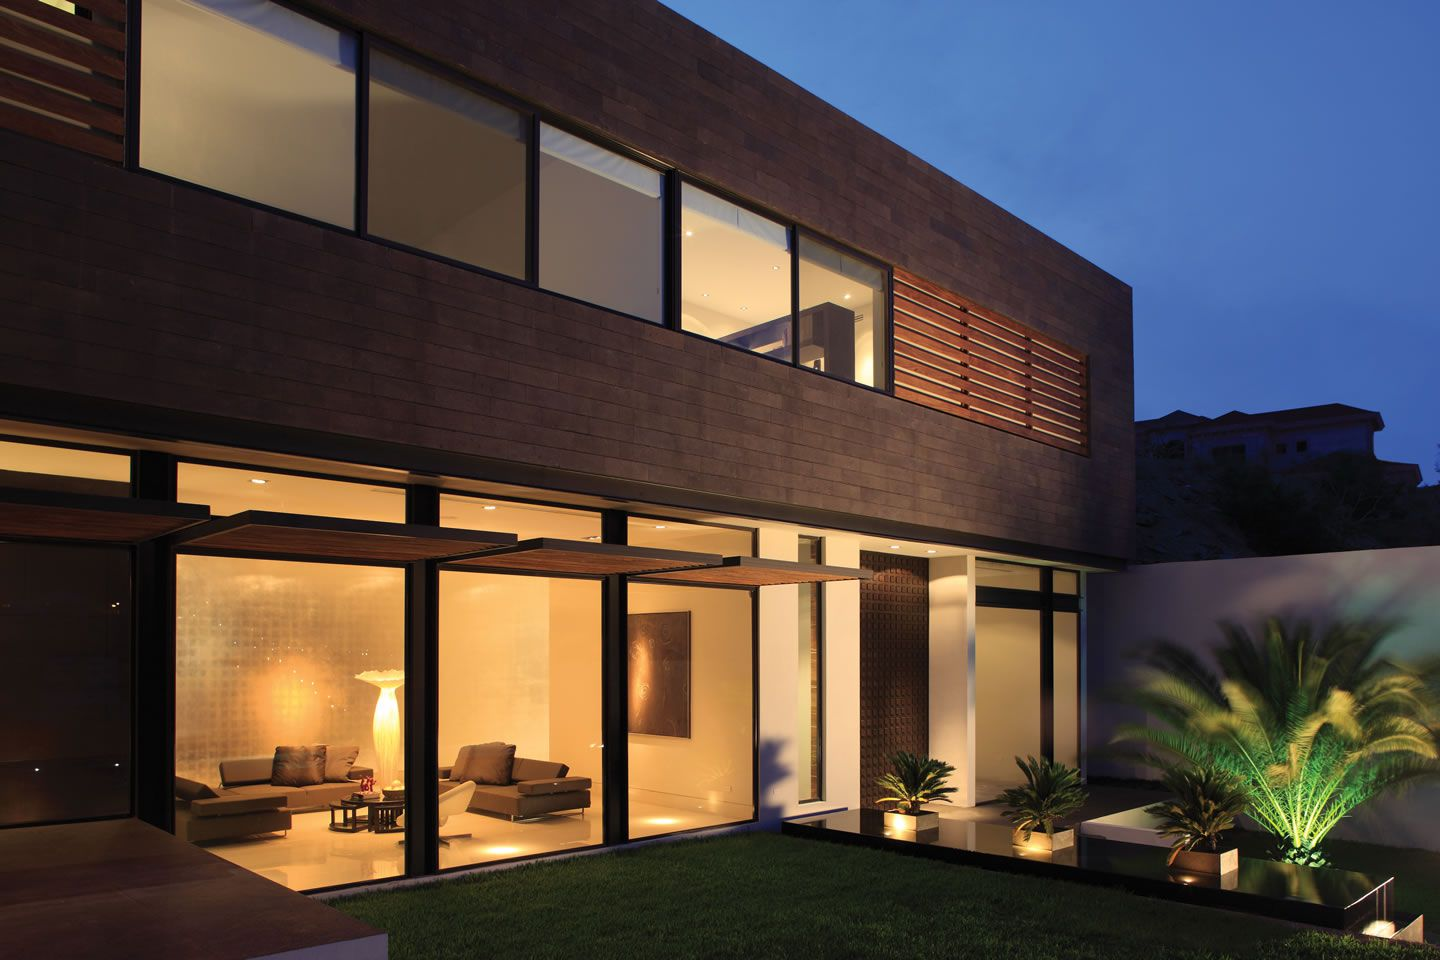 The cg house by glr arquitectos caandesign for Cg home designs